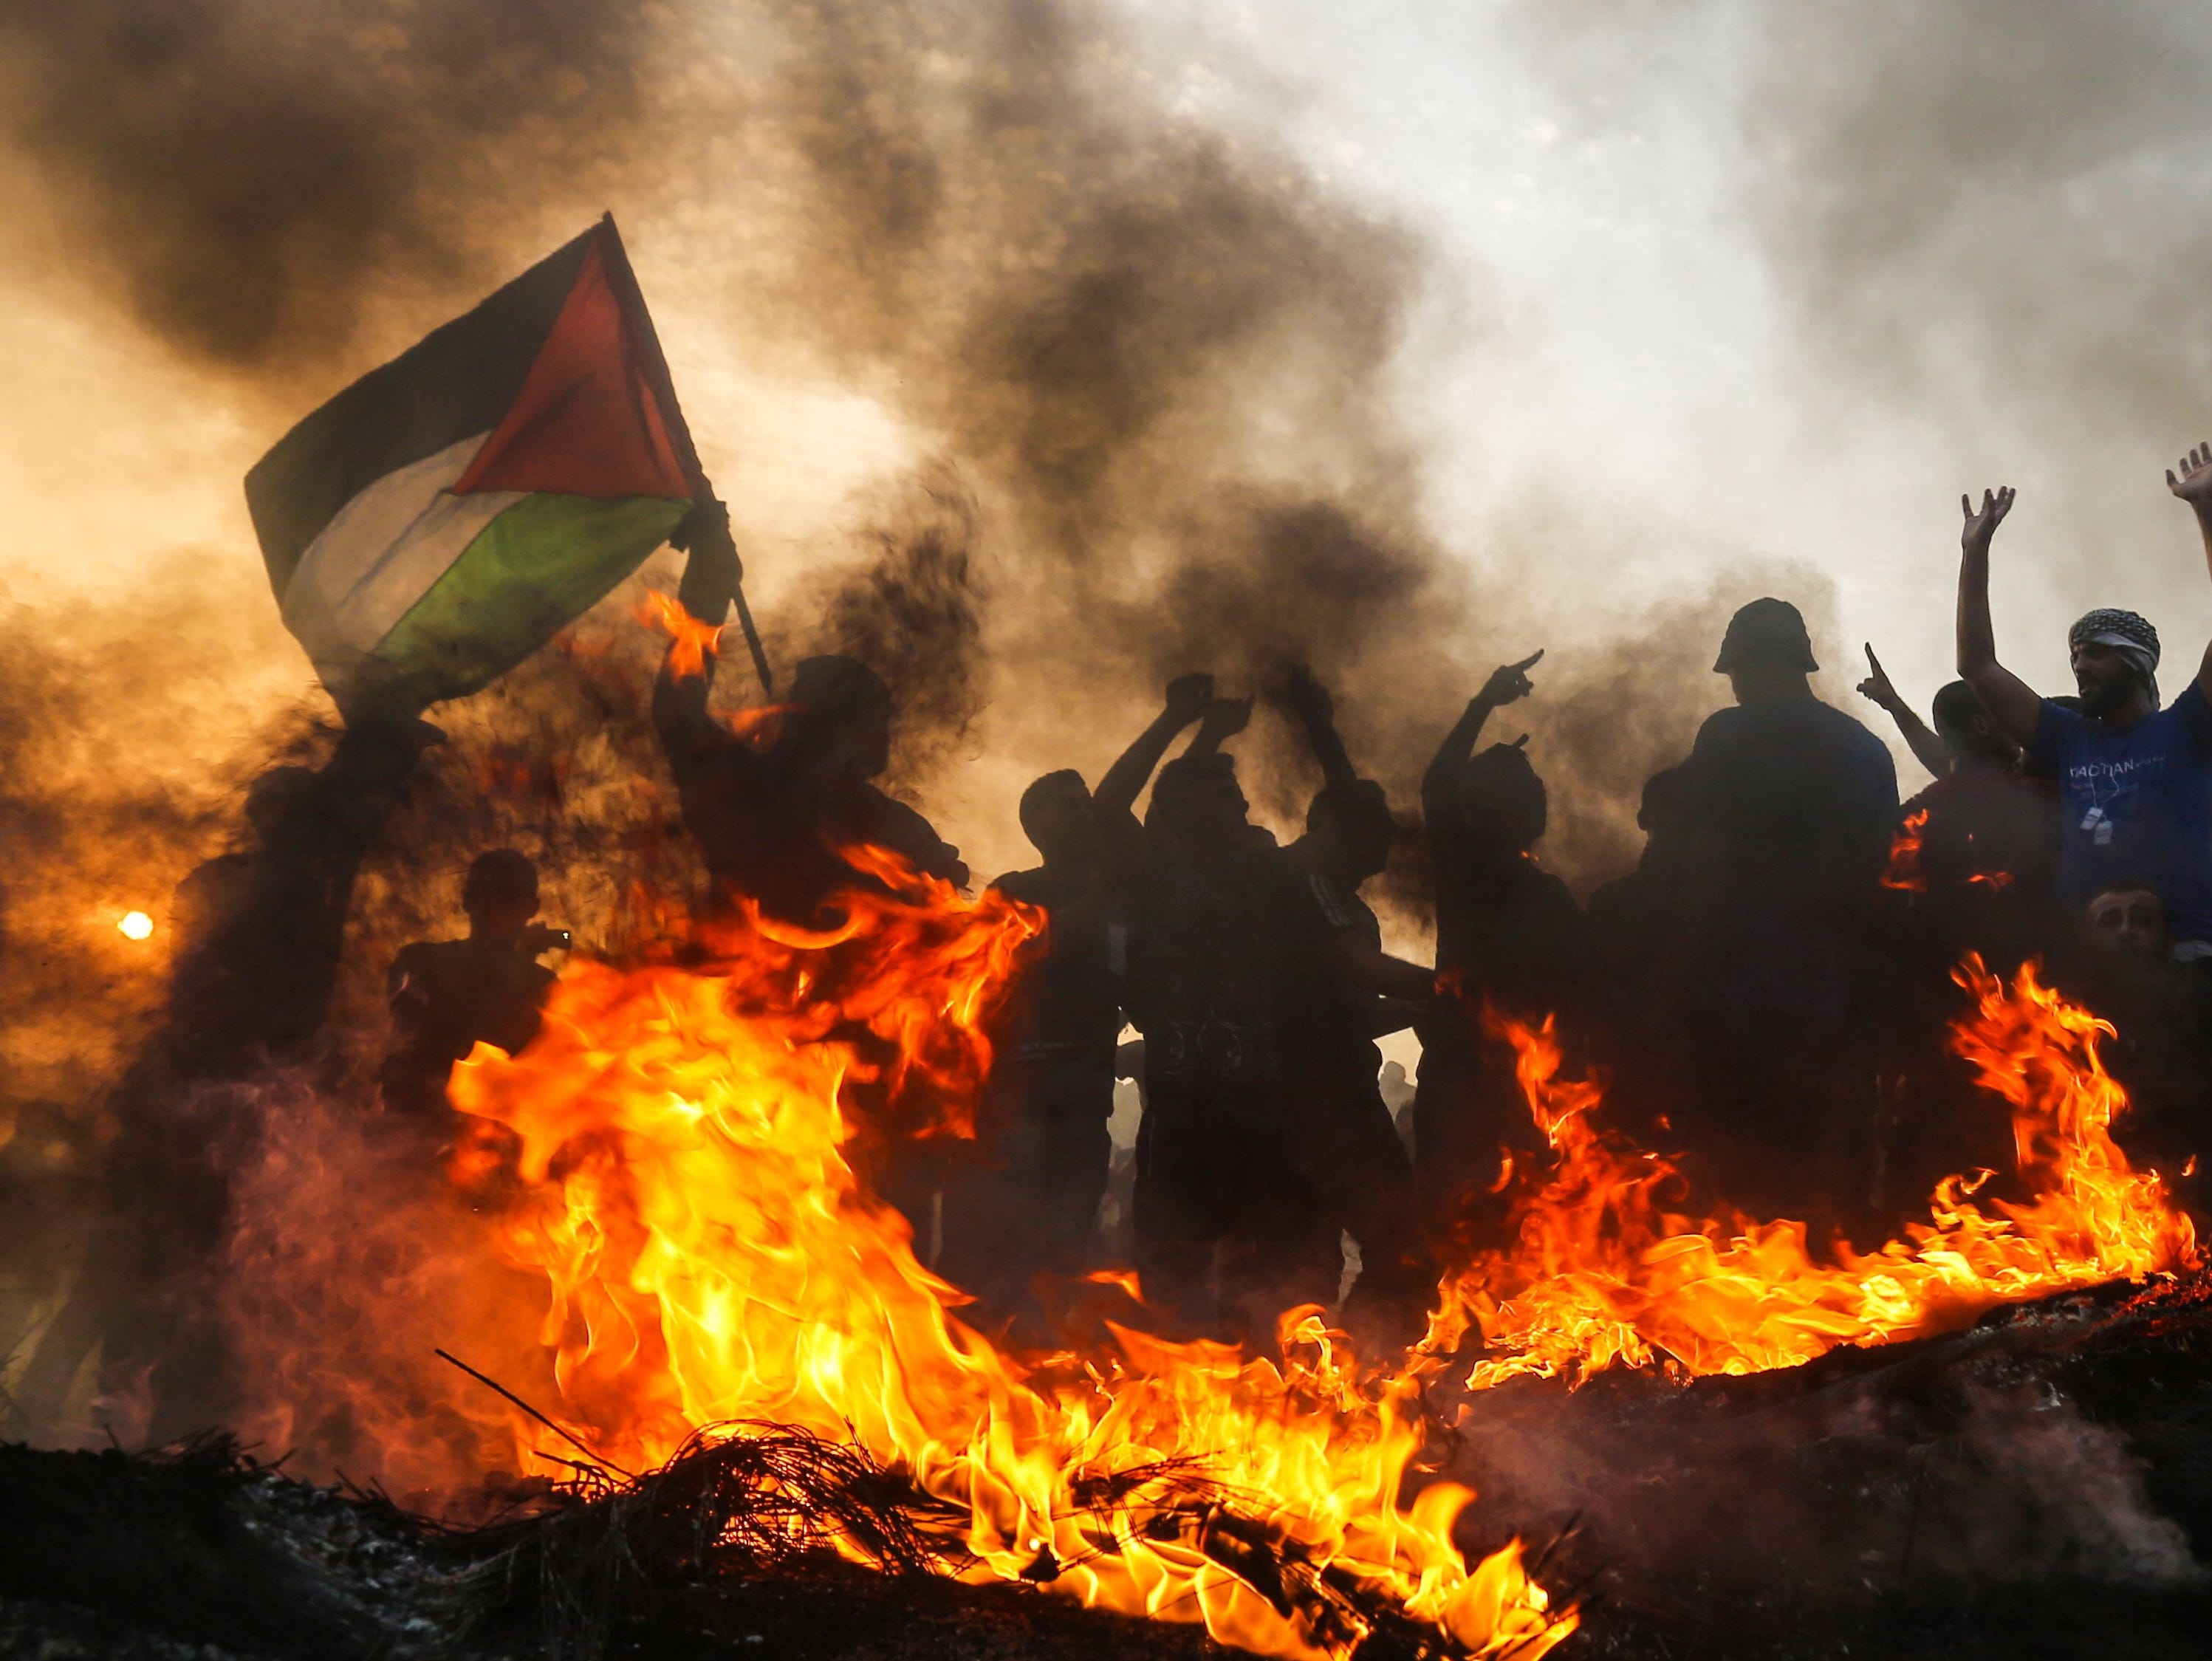 A Palestinian protester waves a national flag during a demonstration on the beach near the maritime border with Israel, in the northern Gaza Strip, on Oct. 22, 2018.